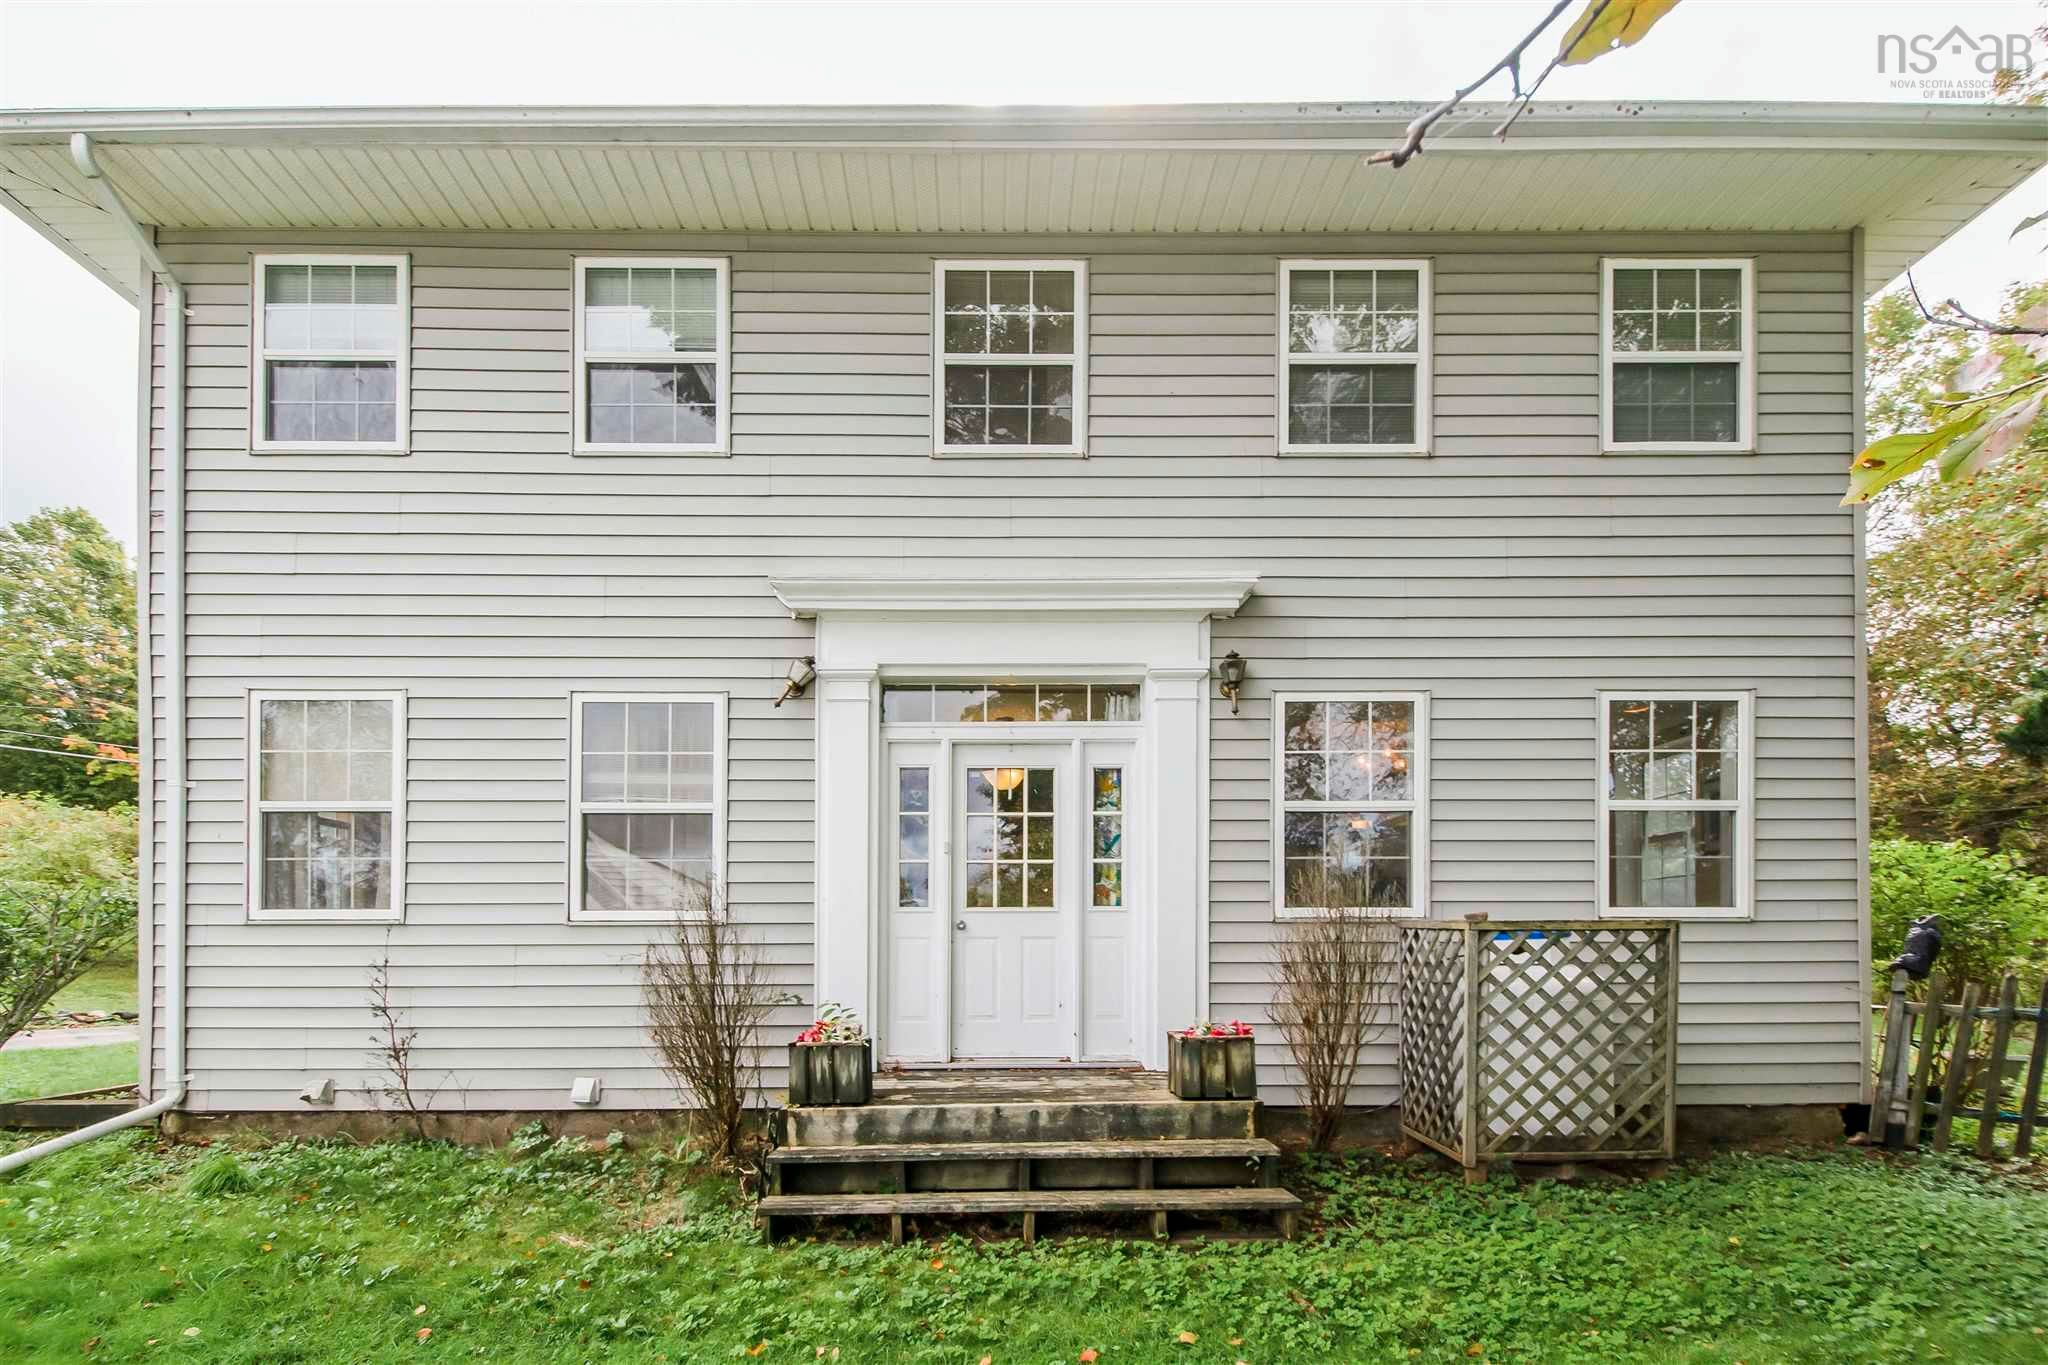 Main Photo: 28 McLean Street in Truro: 104-Truro/Bible Hill/Brookfield Residential for sale (Northern Region)  : MLS®# 202124994